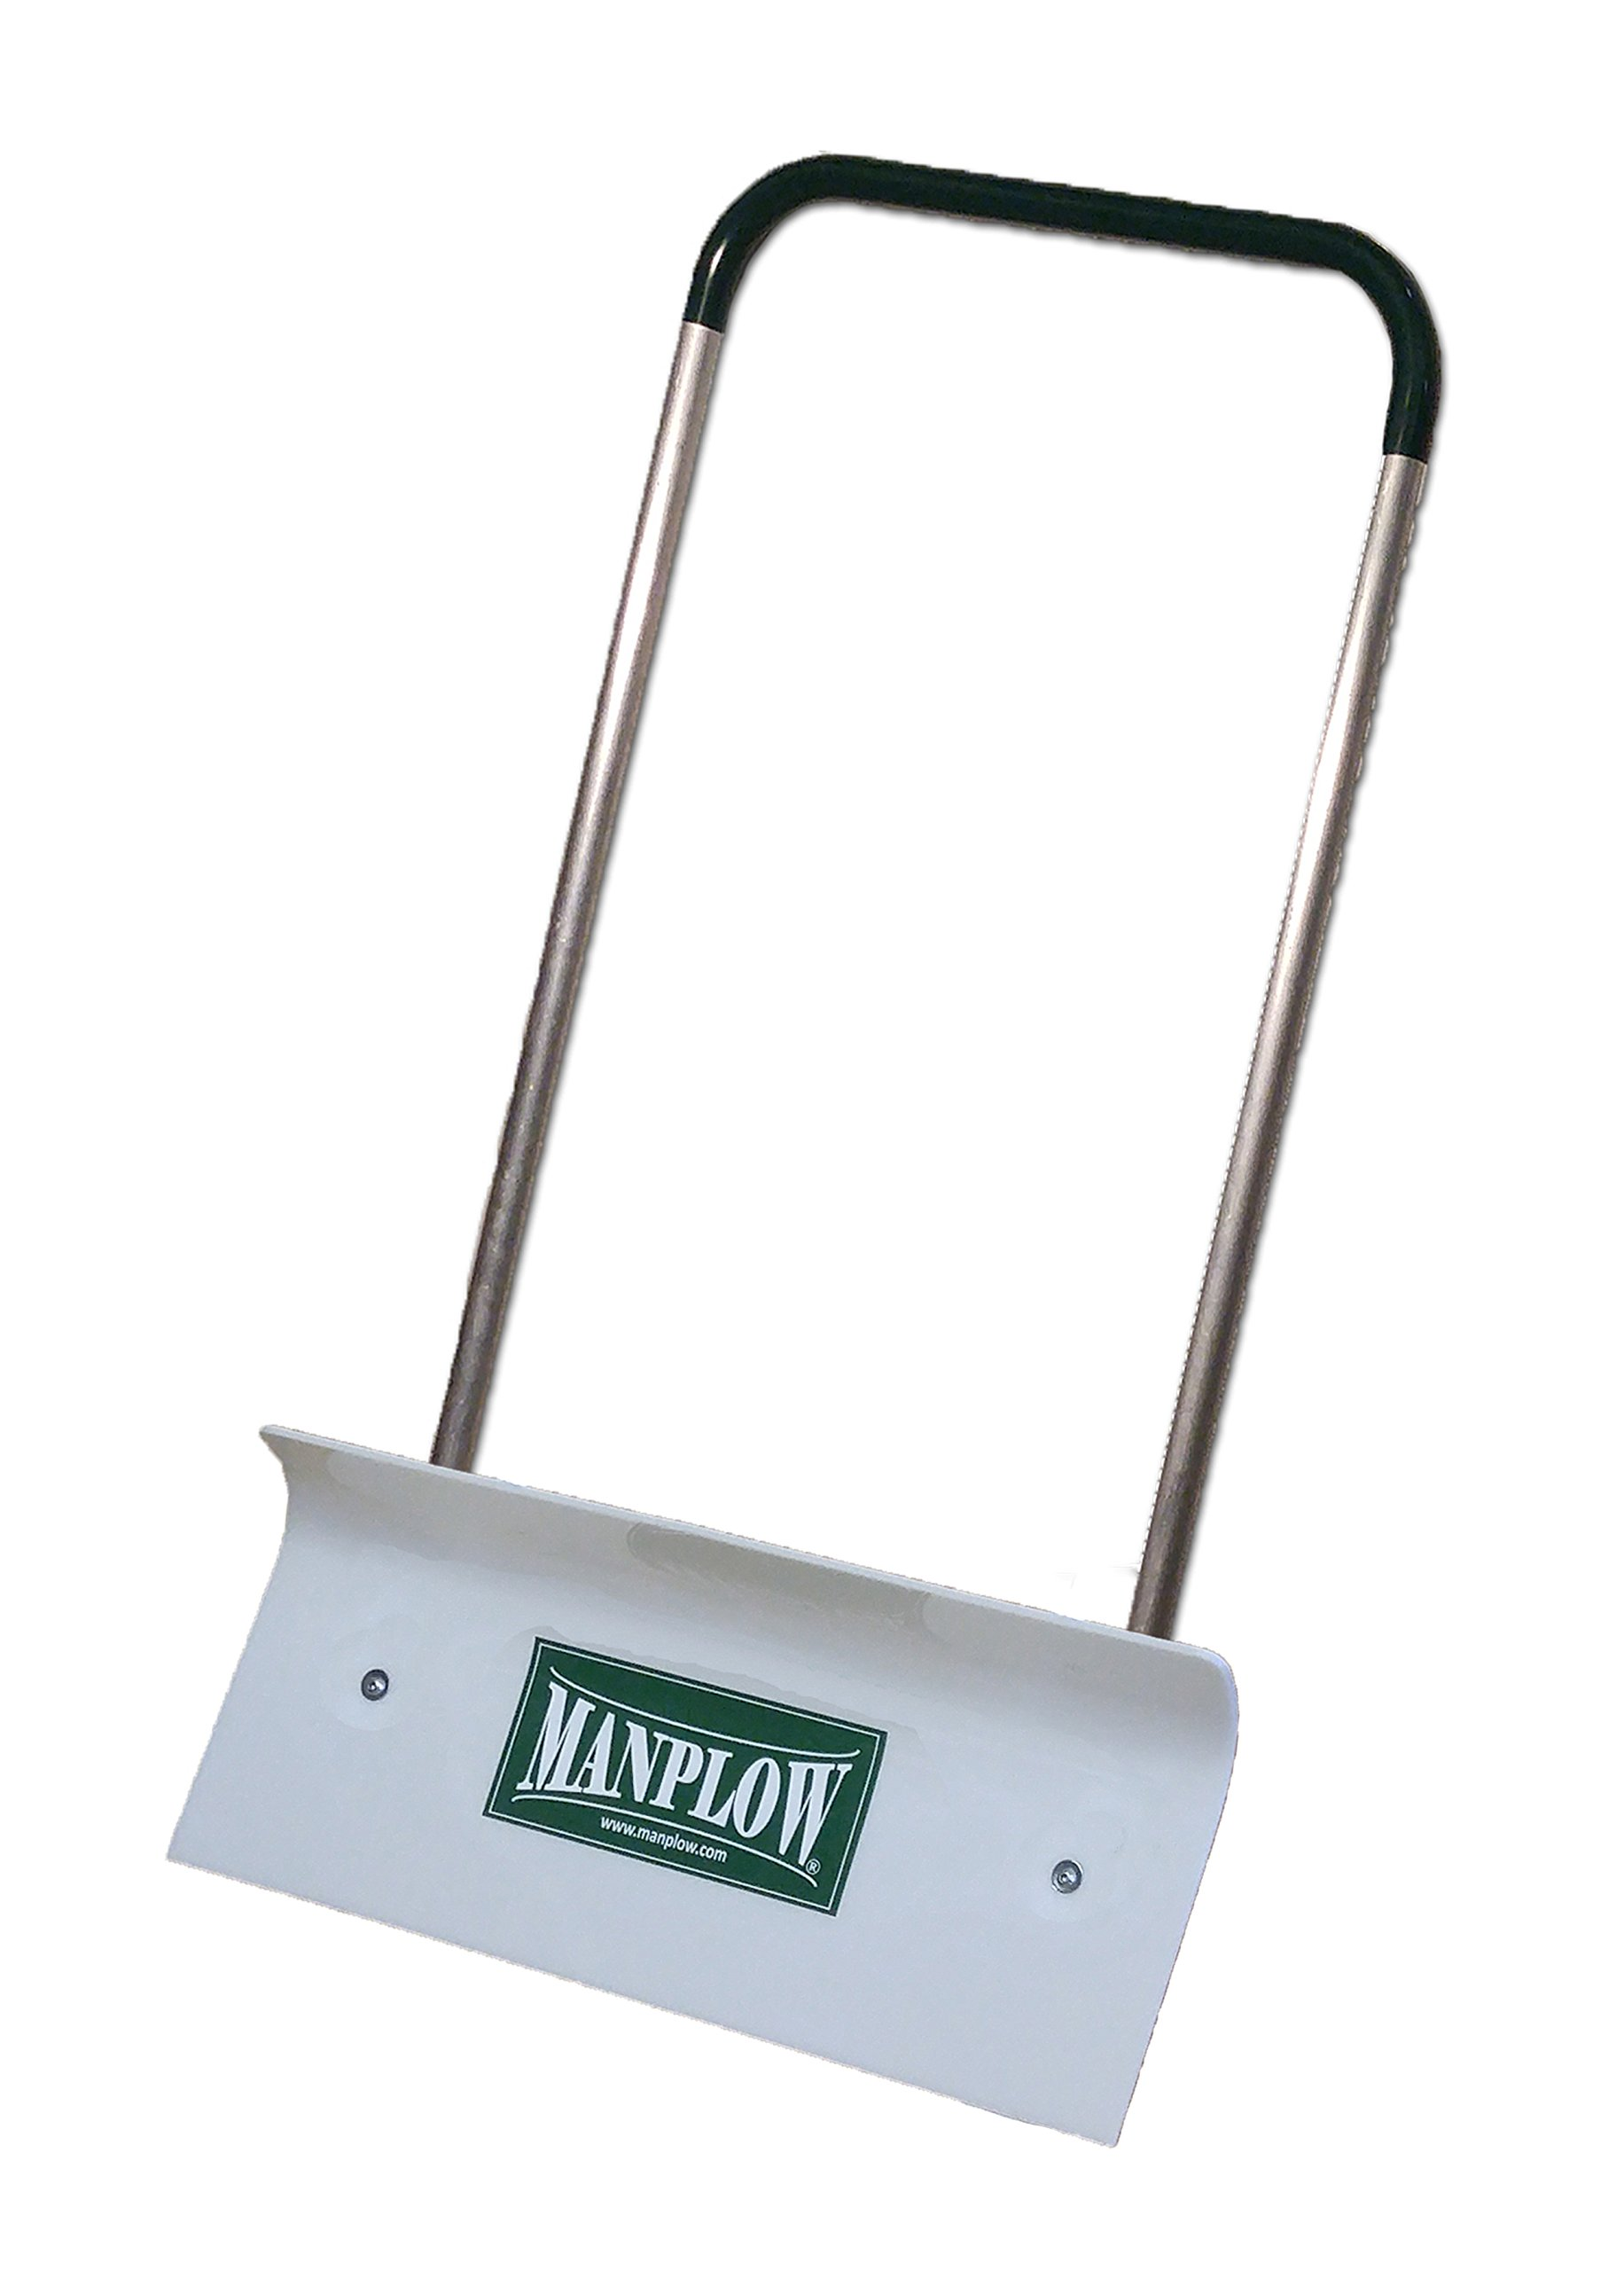 Manplow MT24-U-3PK Snow Shovel with U Handle, 24'', 3-Pack